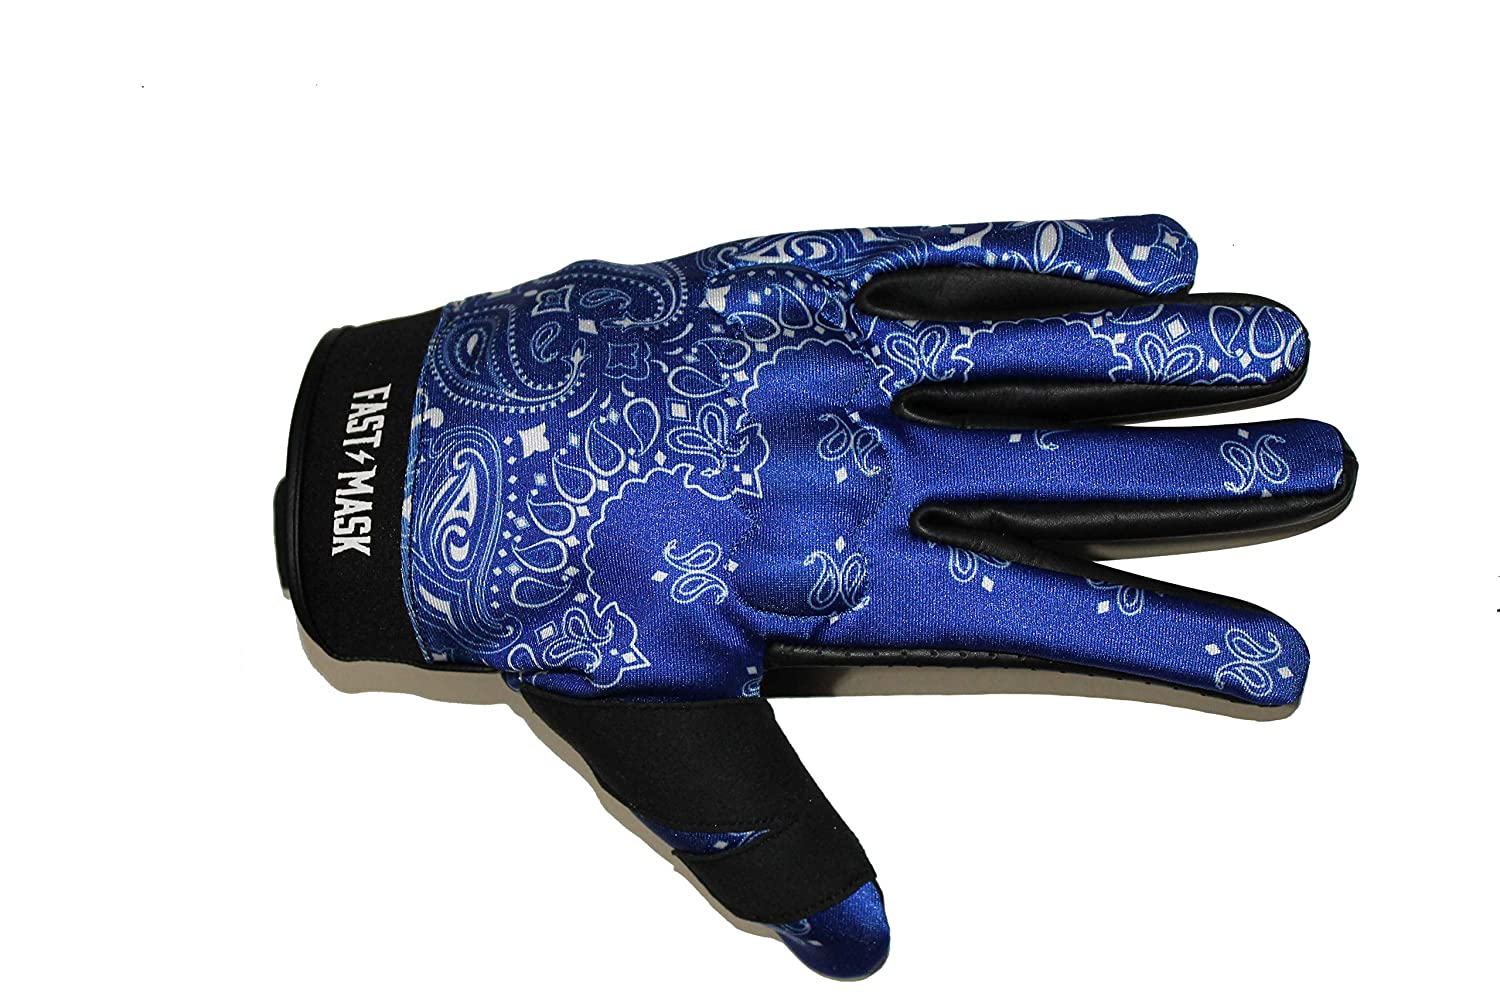 XL, RED BANDANA PRINT FAST MASK MOTORCYCLE GLOVE FULL LEATHER REINFORCED PALM AND KNUCKLE PROTECTION